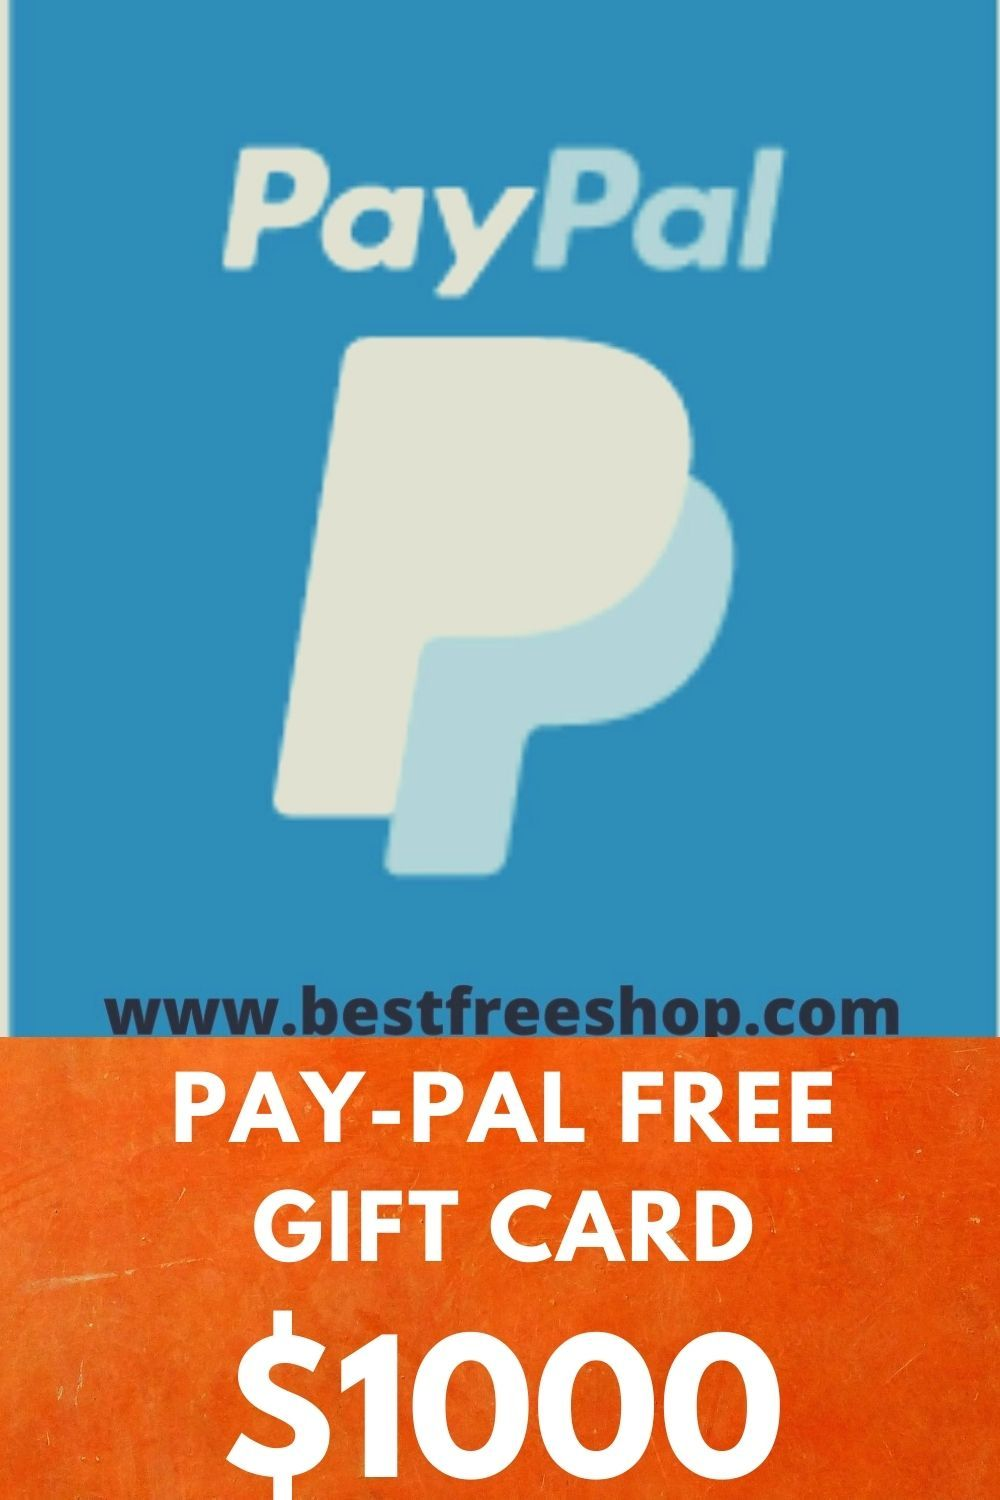 Pay Pal Free Gift Card In 2020 Paypal Gift Card Gift Card Free Gift Cards